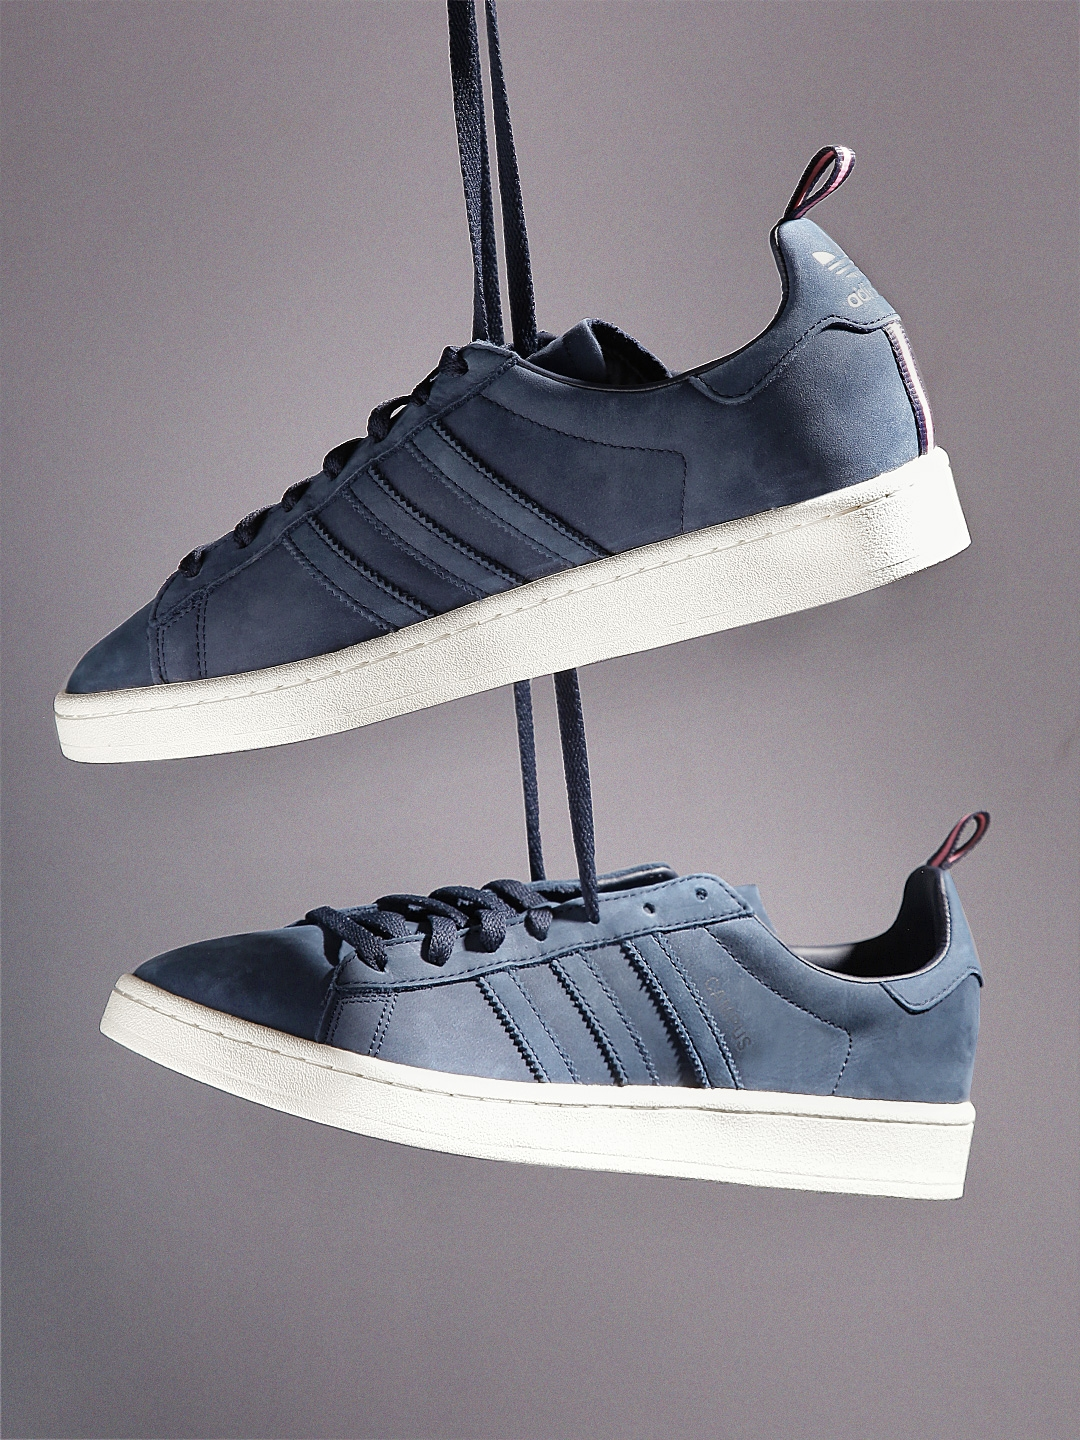 tout neuf 9321b 370e7 ADIDAS Originals Men Navy CAMPUS Leather Sneakers